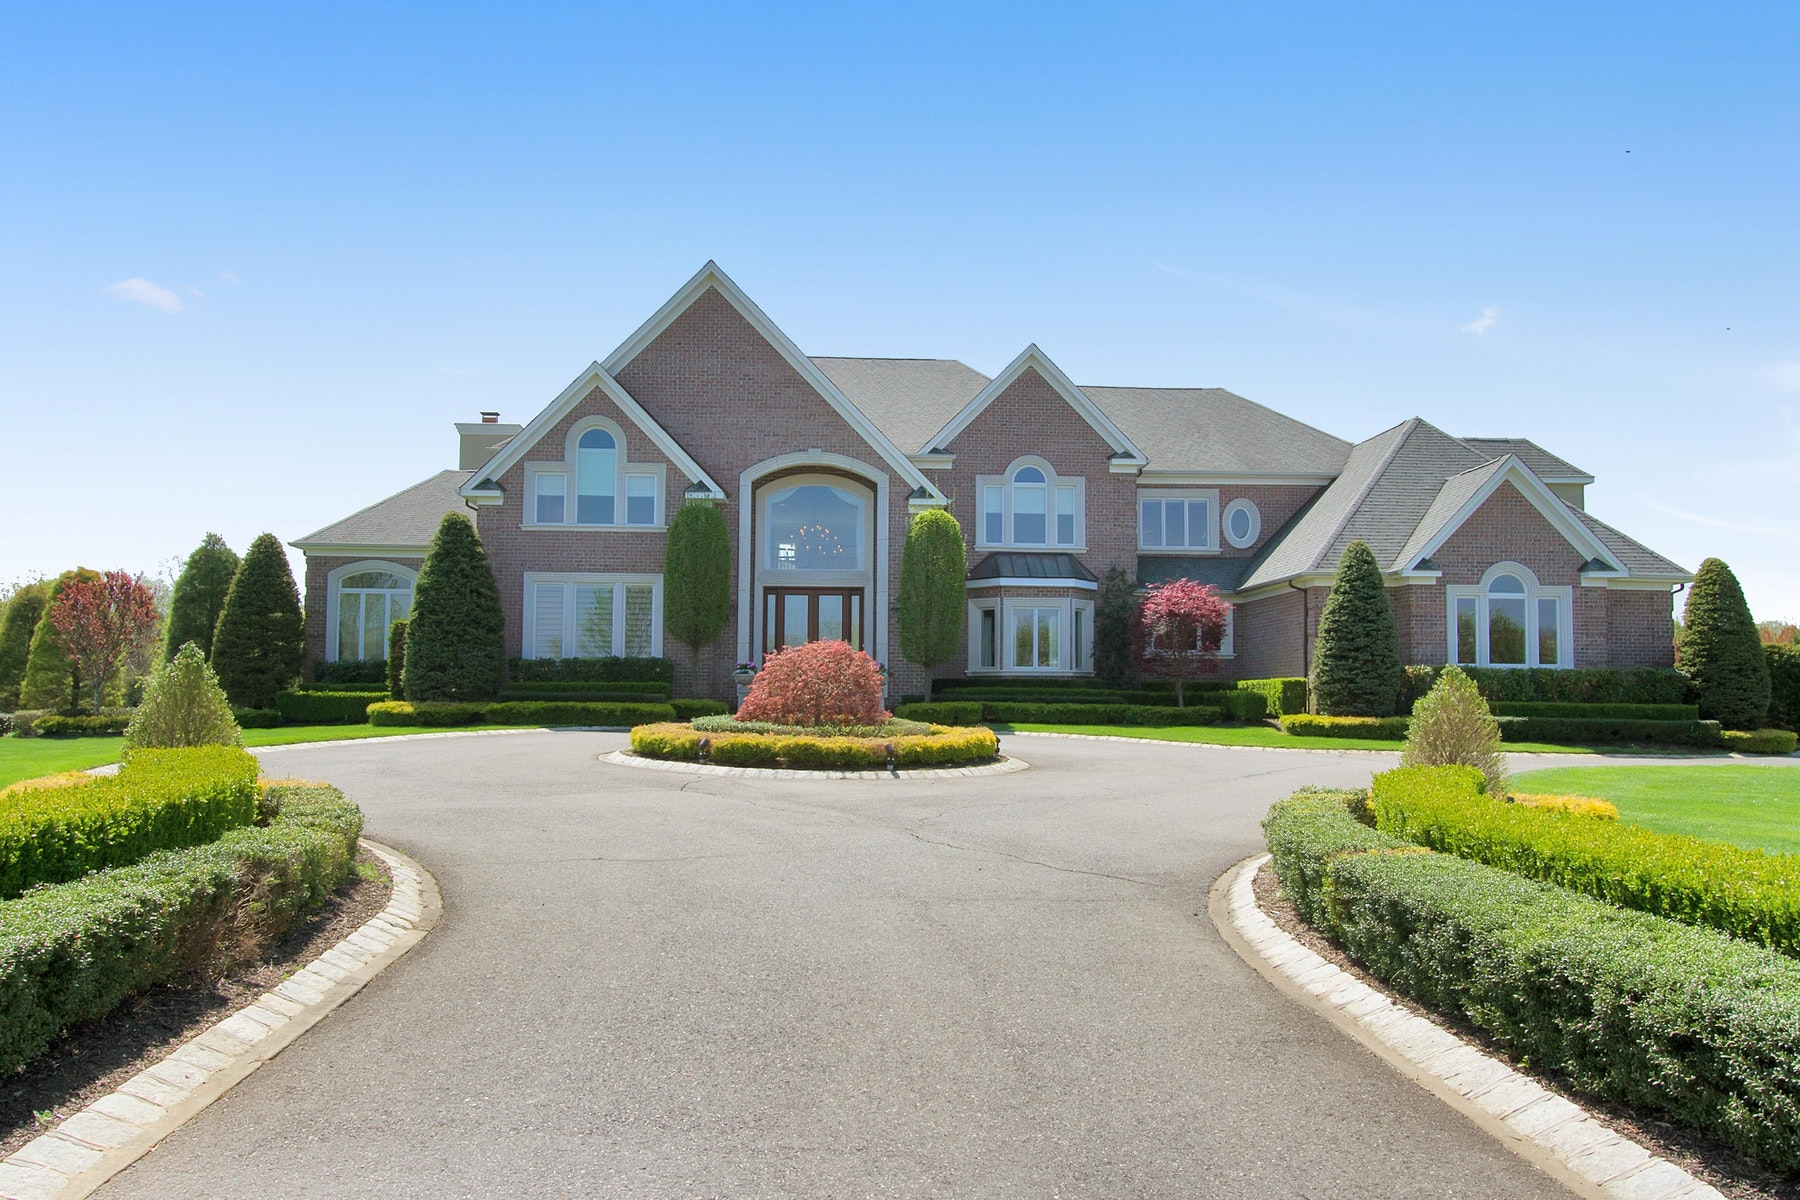 Single Family Homes for Sale at 5 Hambletonian Drive Colts Neck, New Jersey 07722 United States